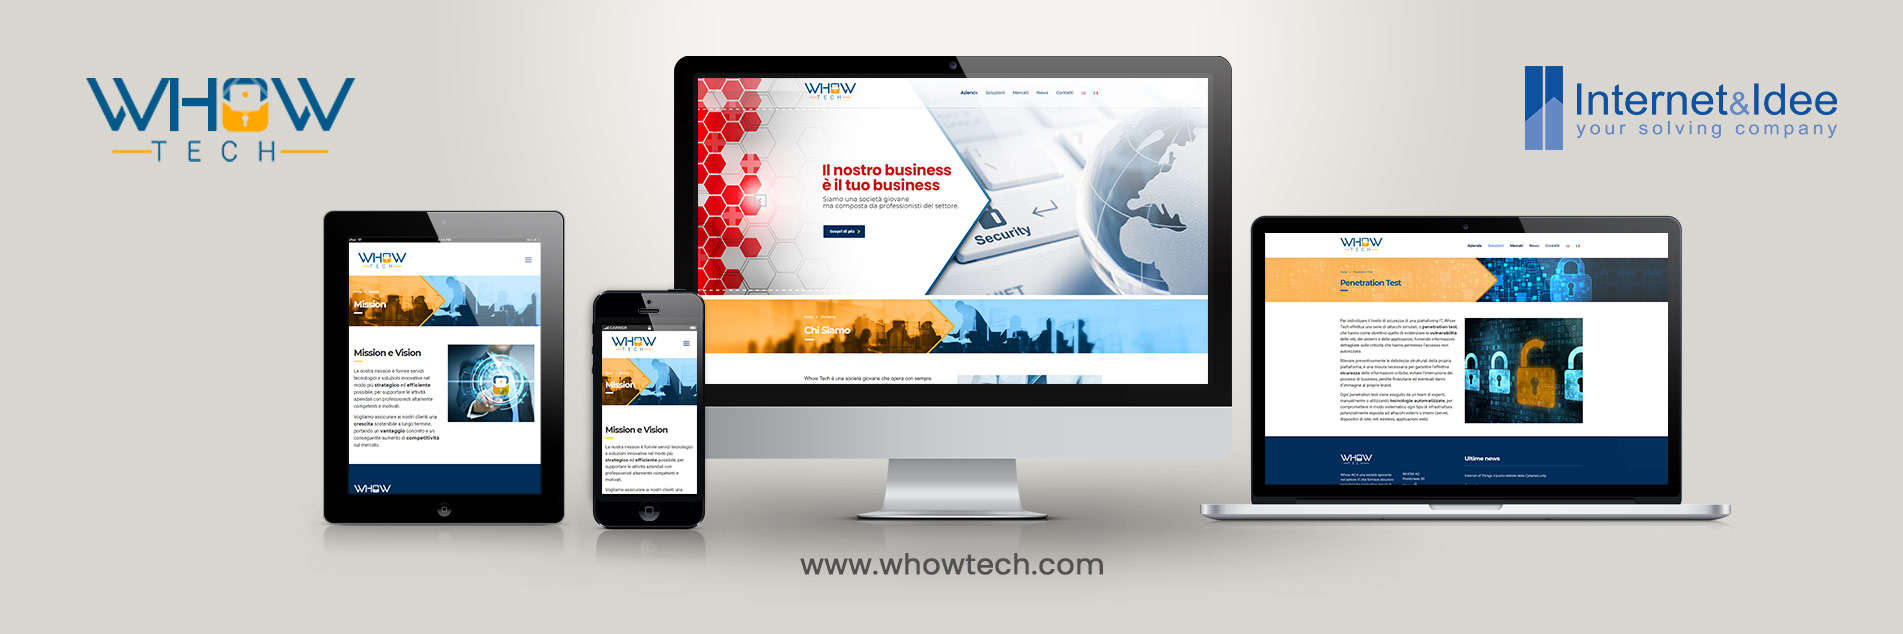 Whowtech.com has been launched: Technological Solutions, System Integration, Cyber Security